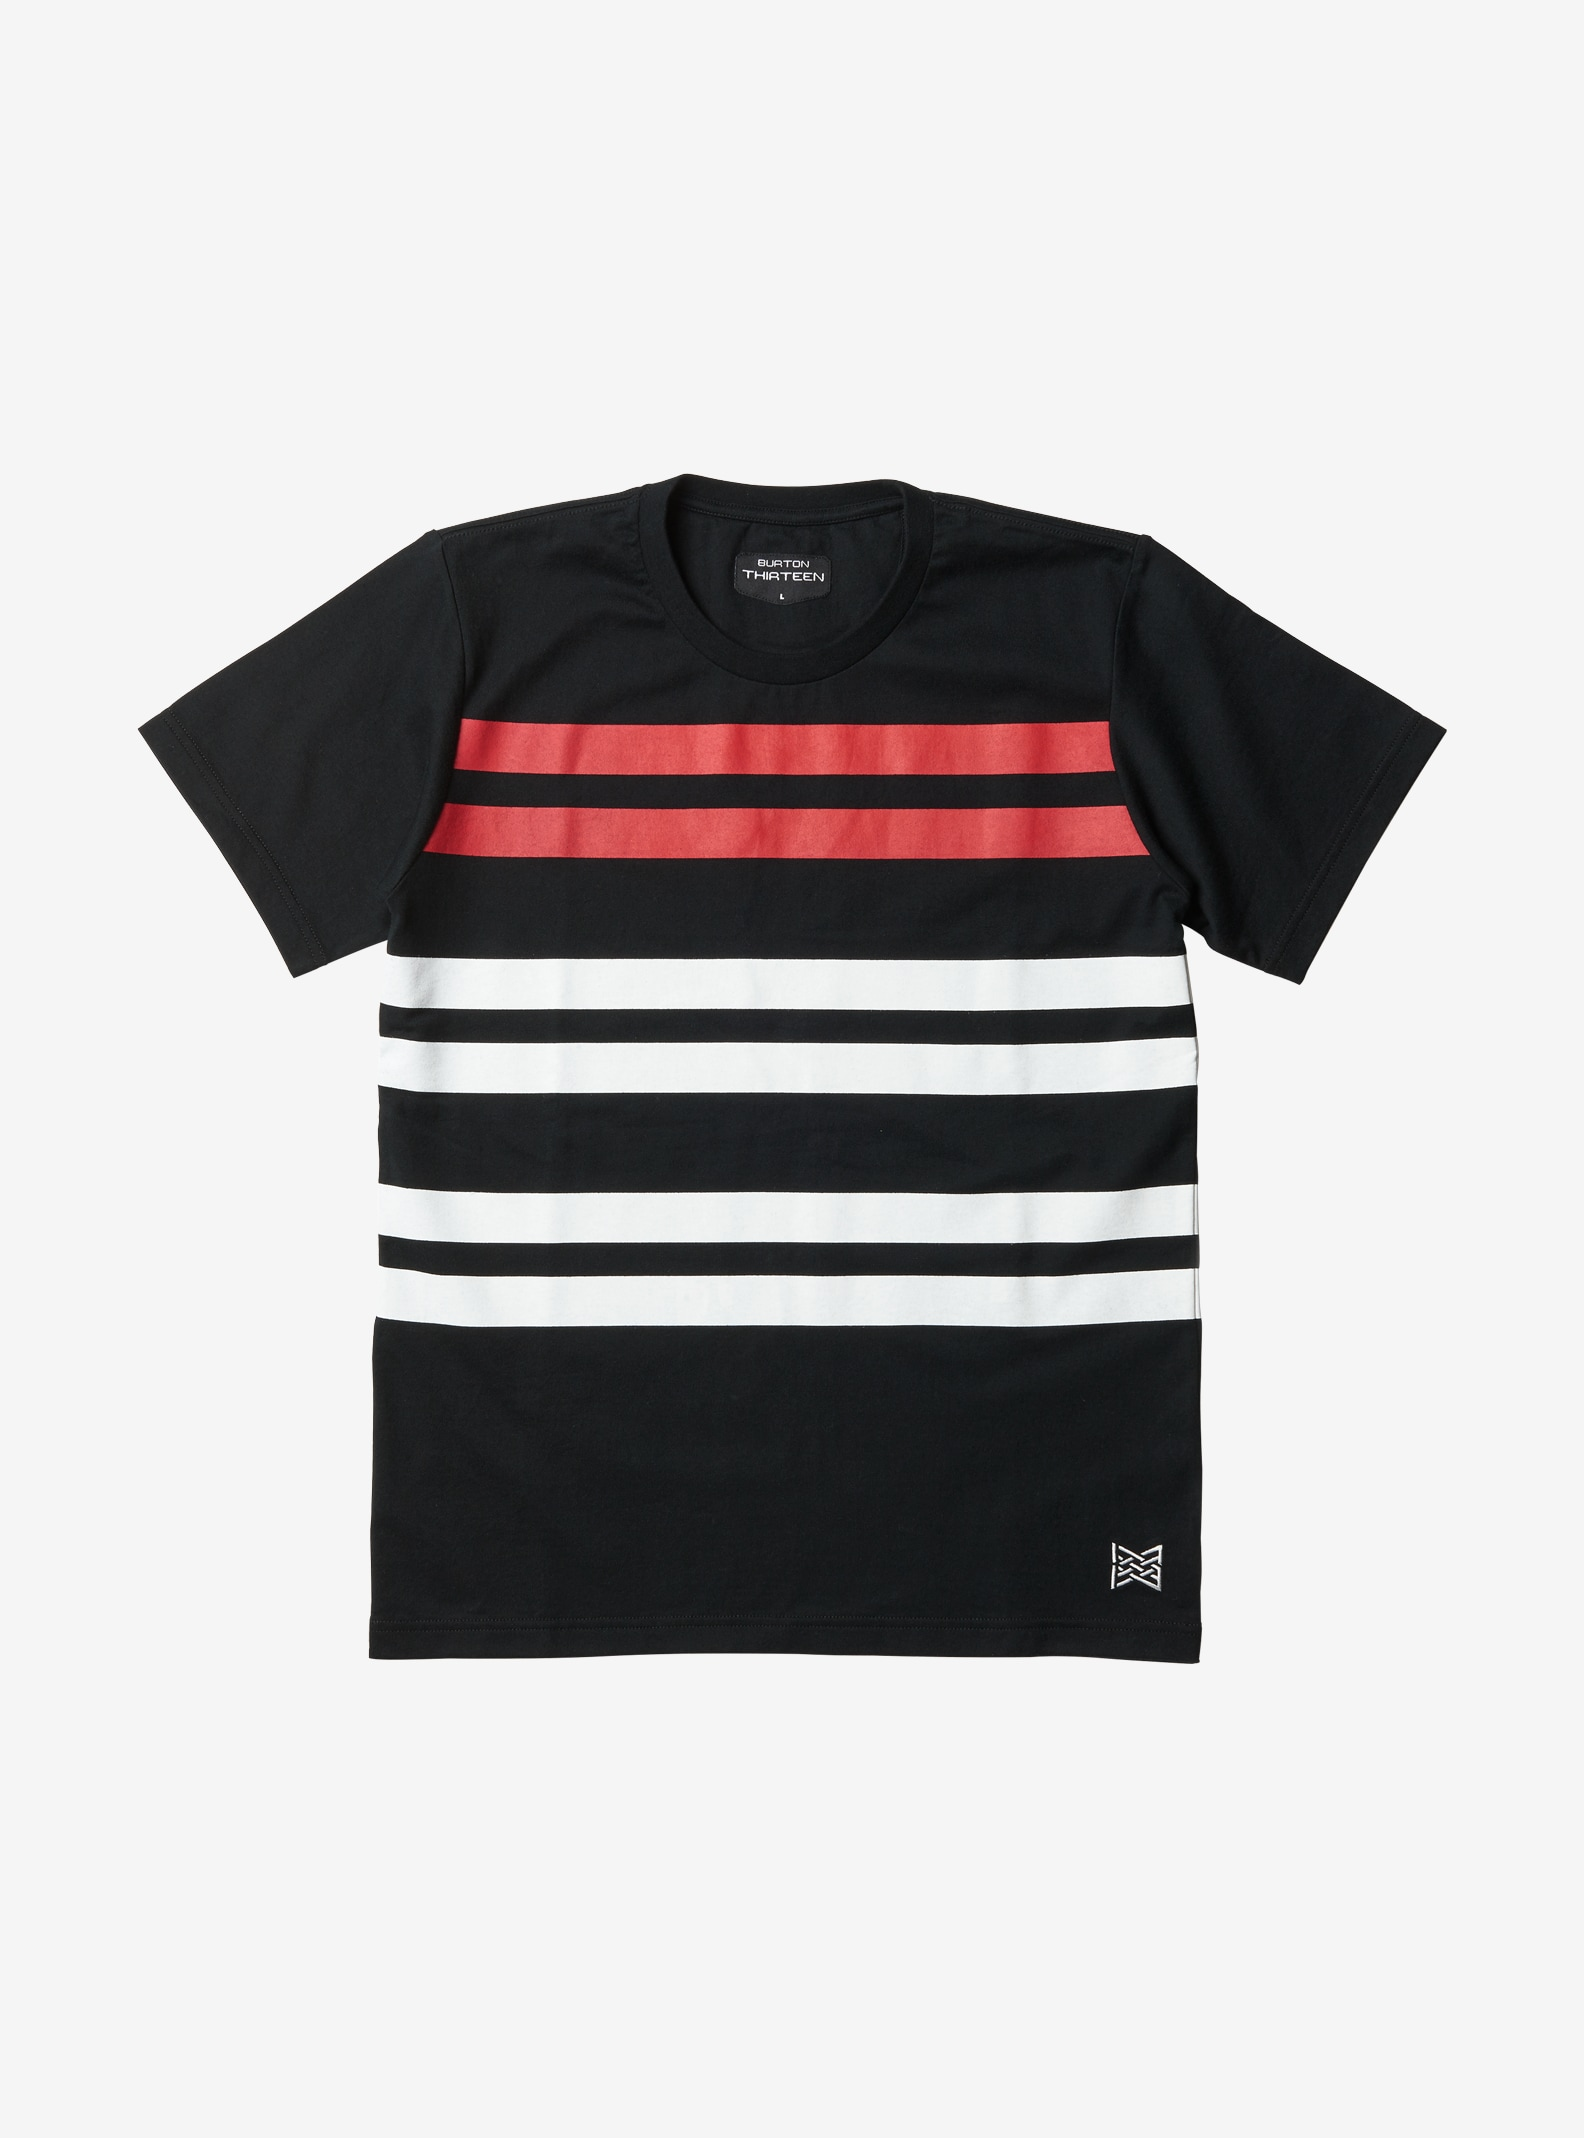 Burton THIRTEEN Ceto Short Sleeve T Shirt shown in Black